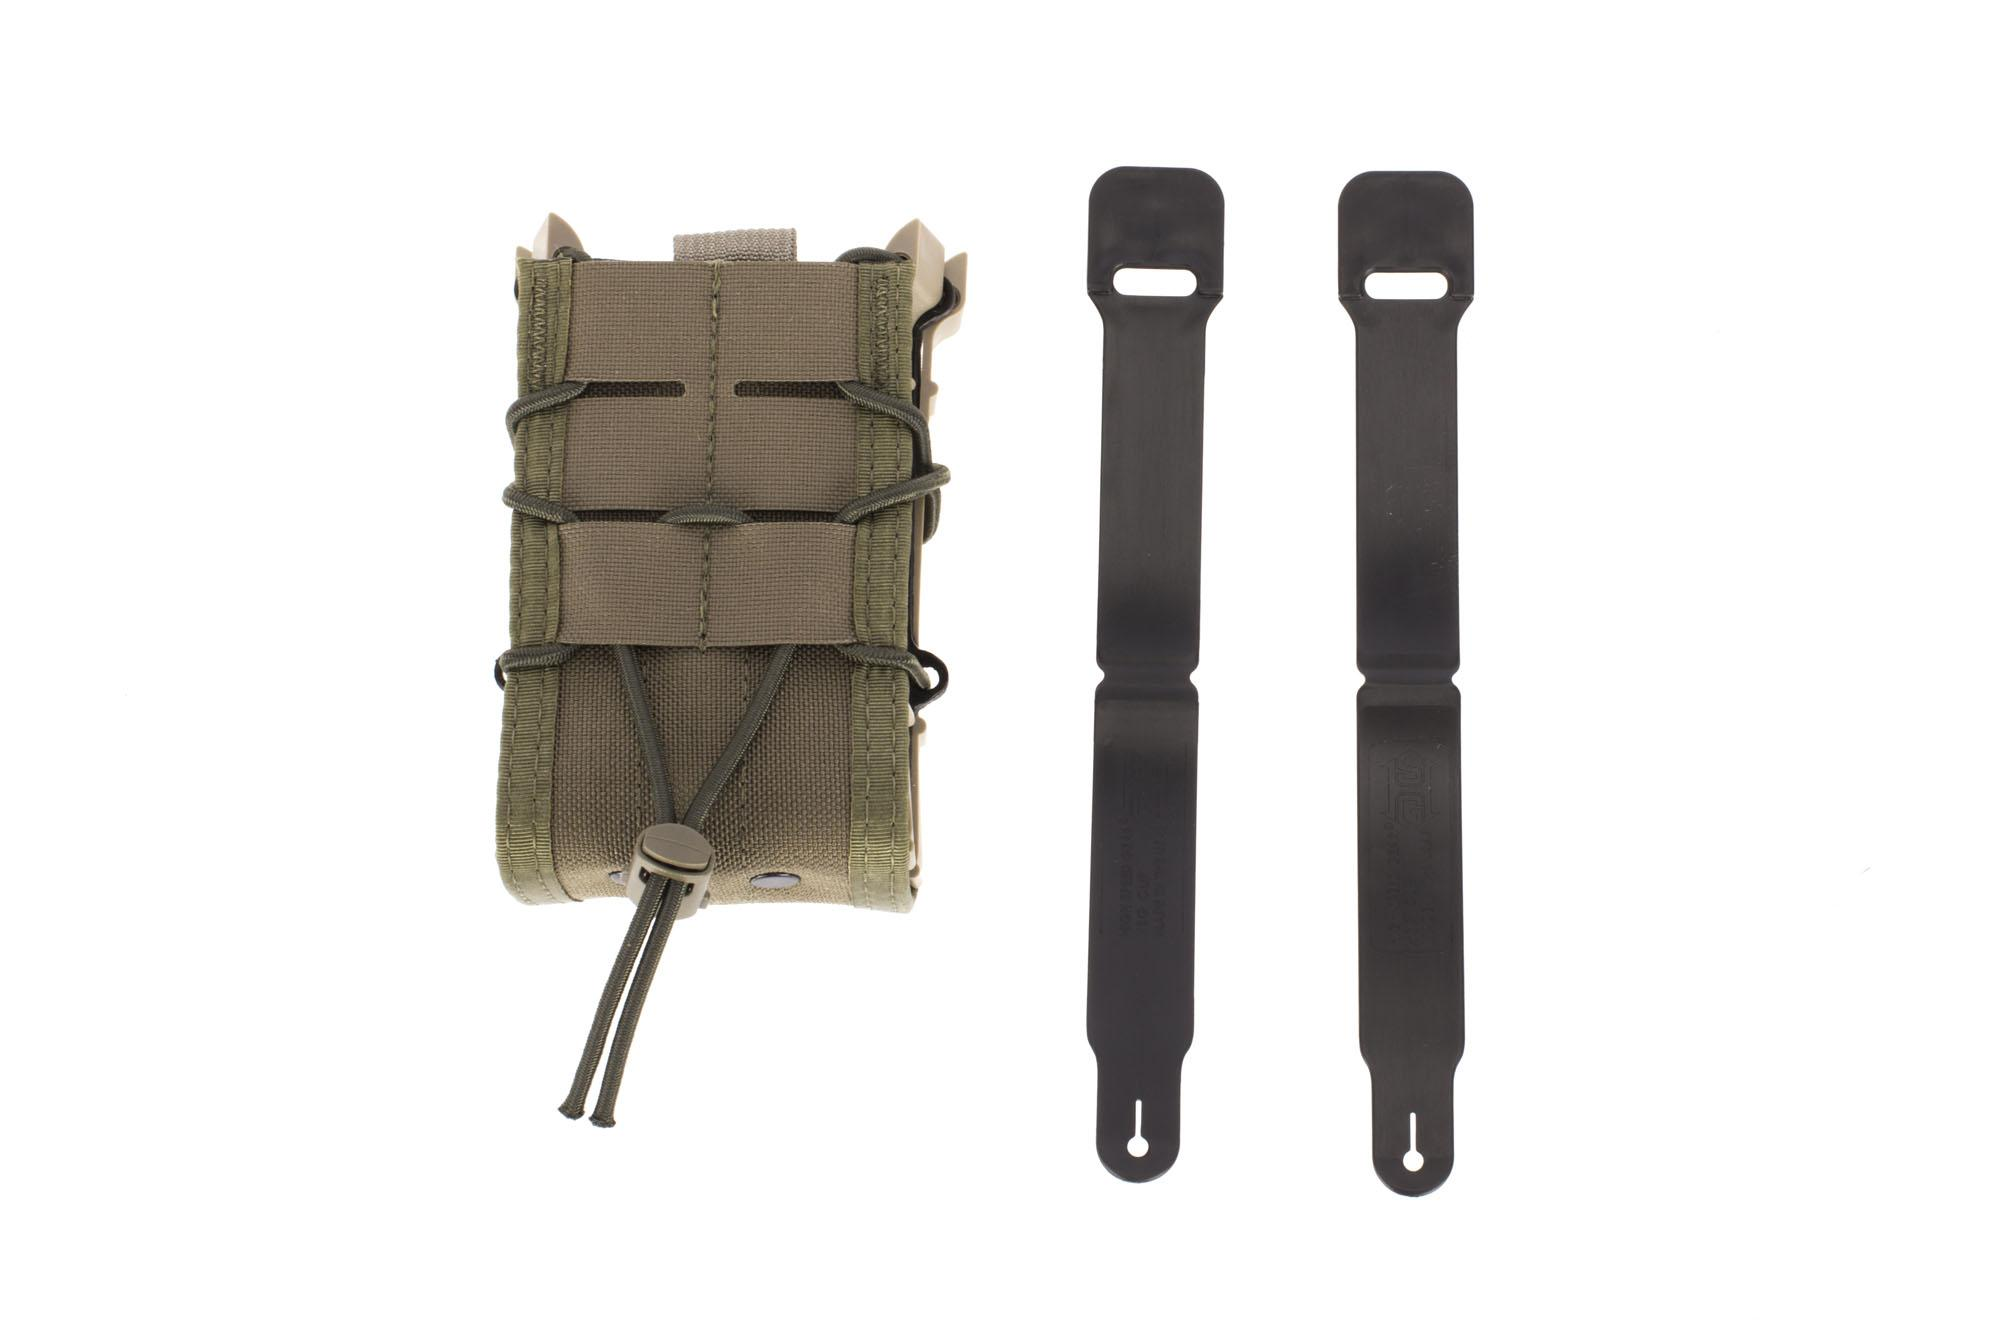 High Speed Gear X2R TACO Magazine Pouch MOLLE - Olive Drab Green